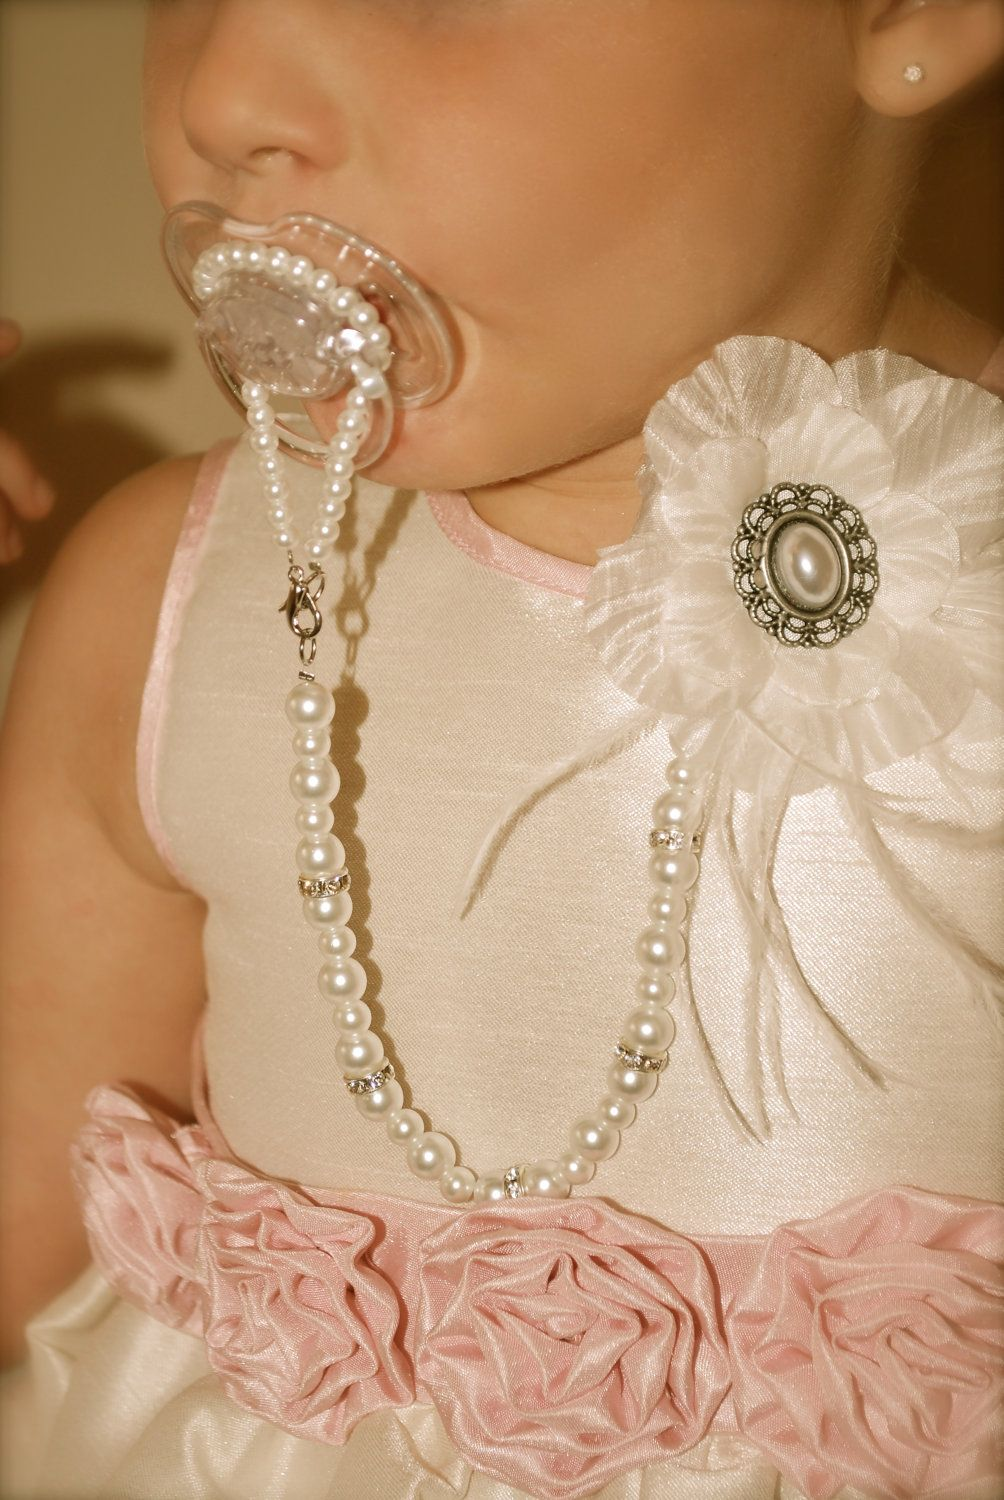 Omg. This is SO CUTE. Maybe something for a little flower girl? hehe